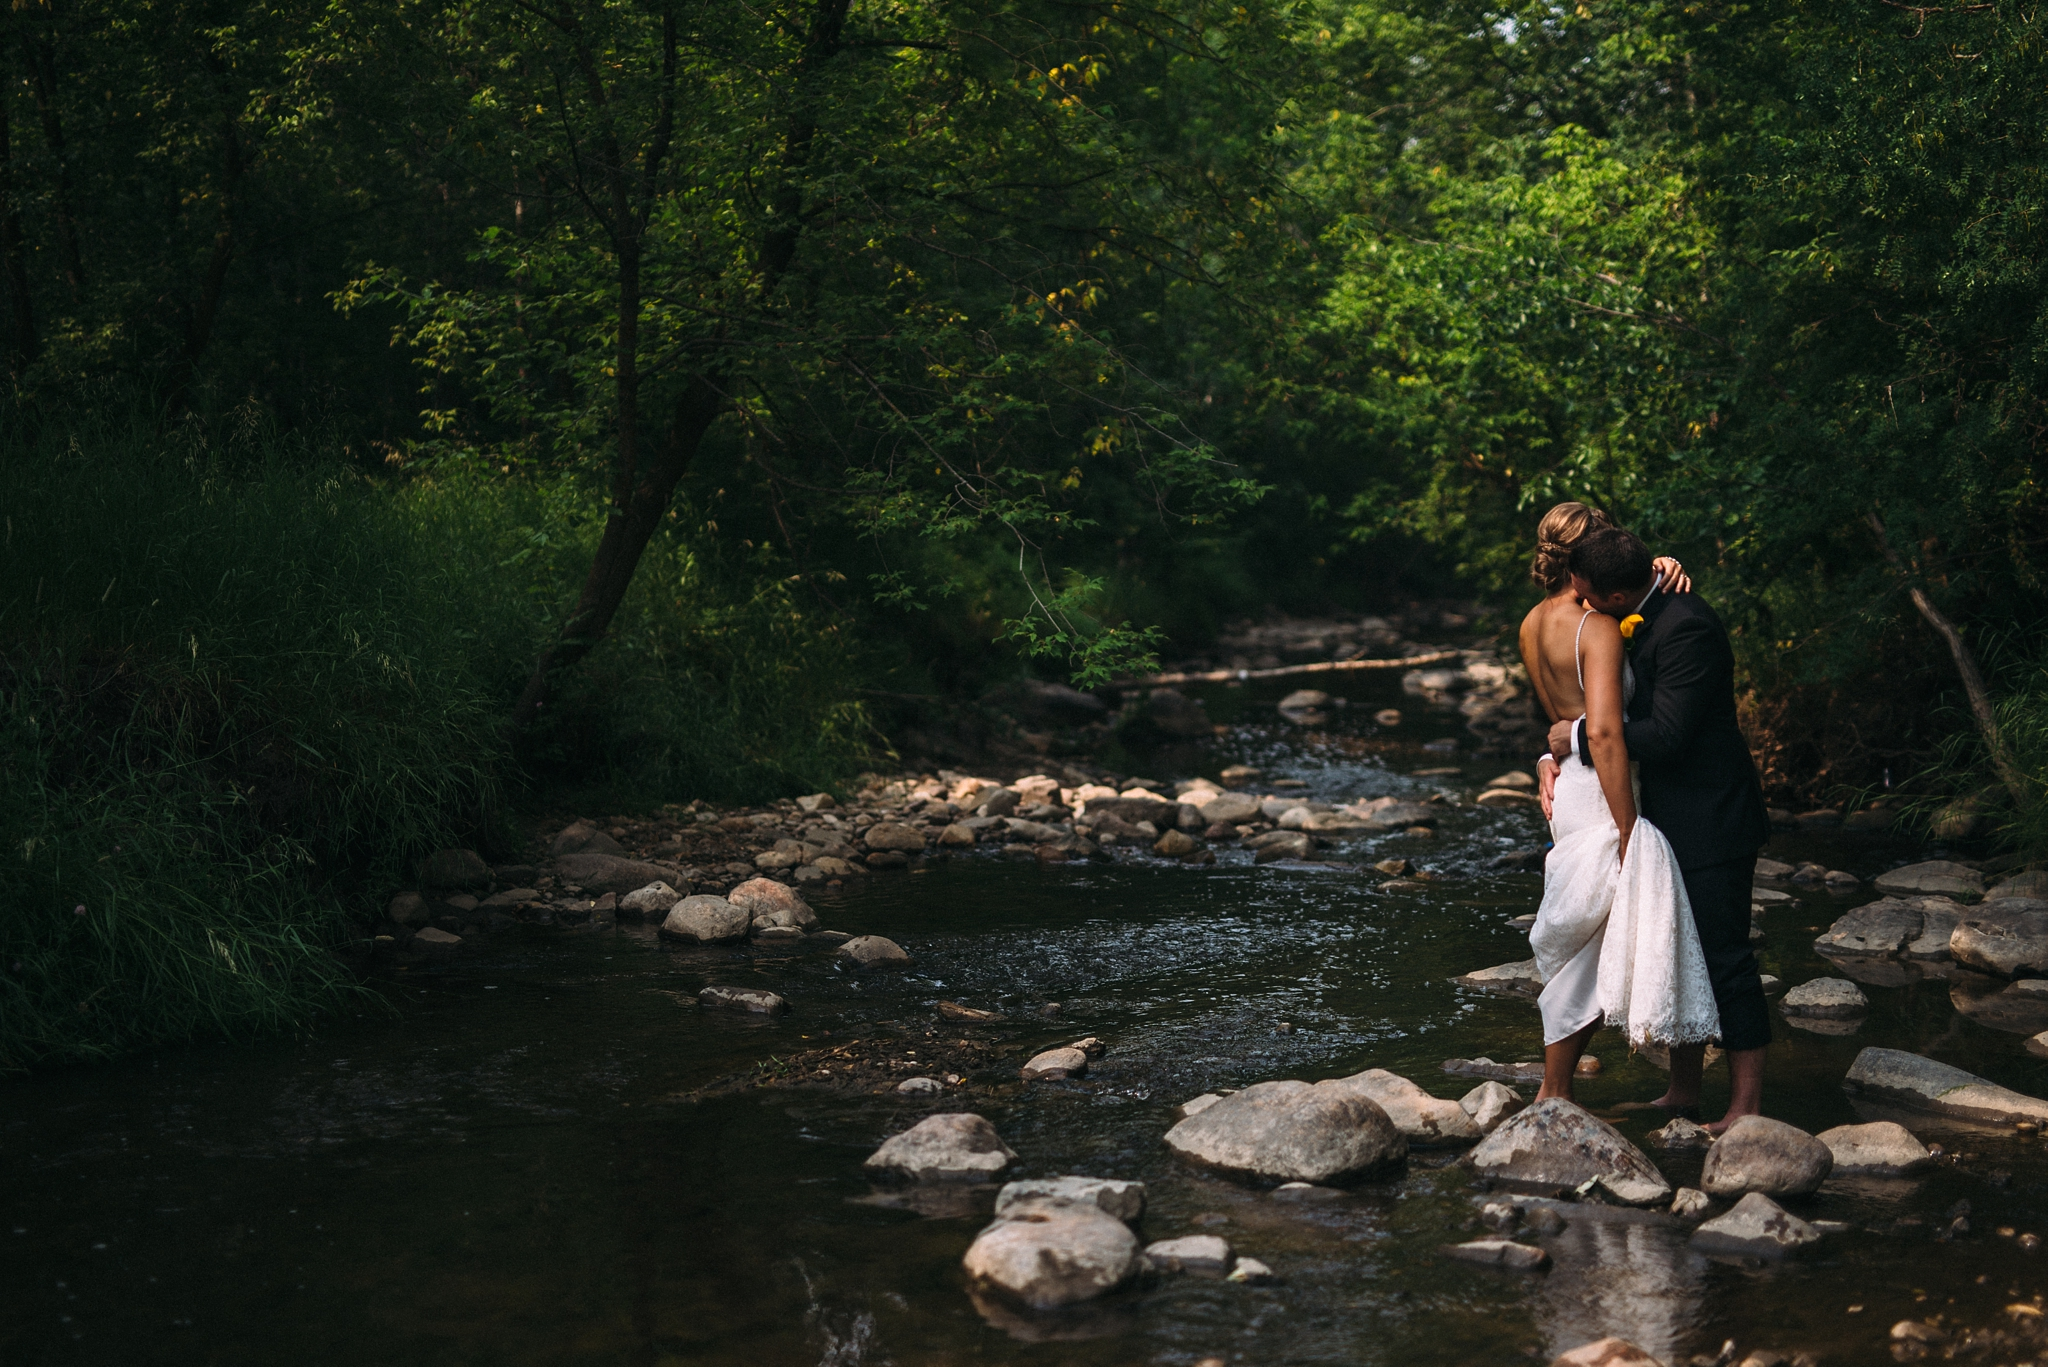 kaihla_tonai_intimate_wedding_elopement_photographer_1988